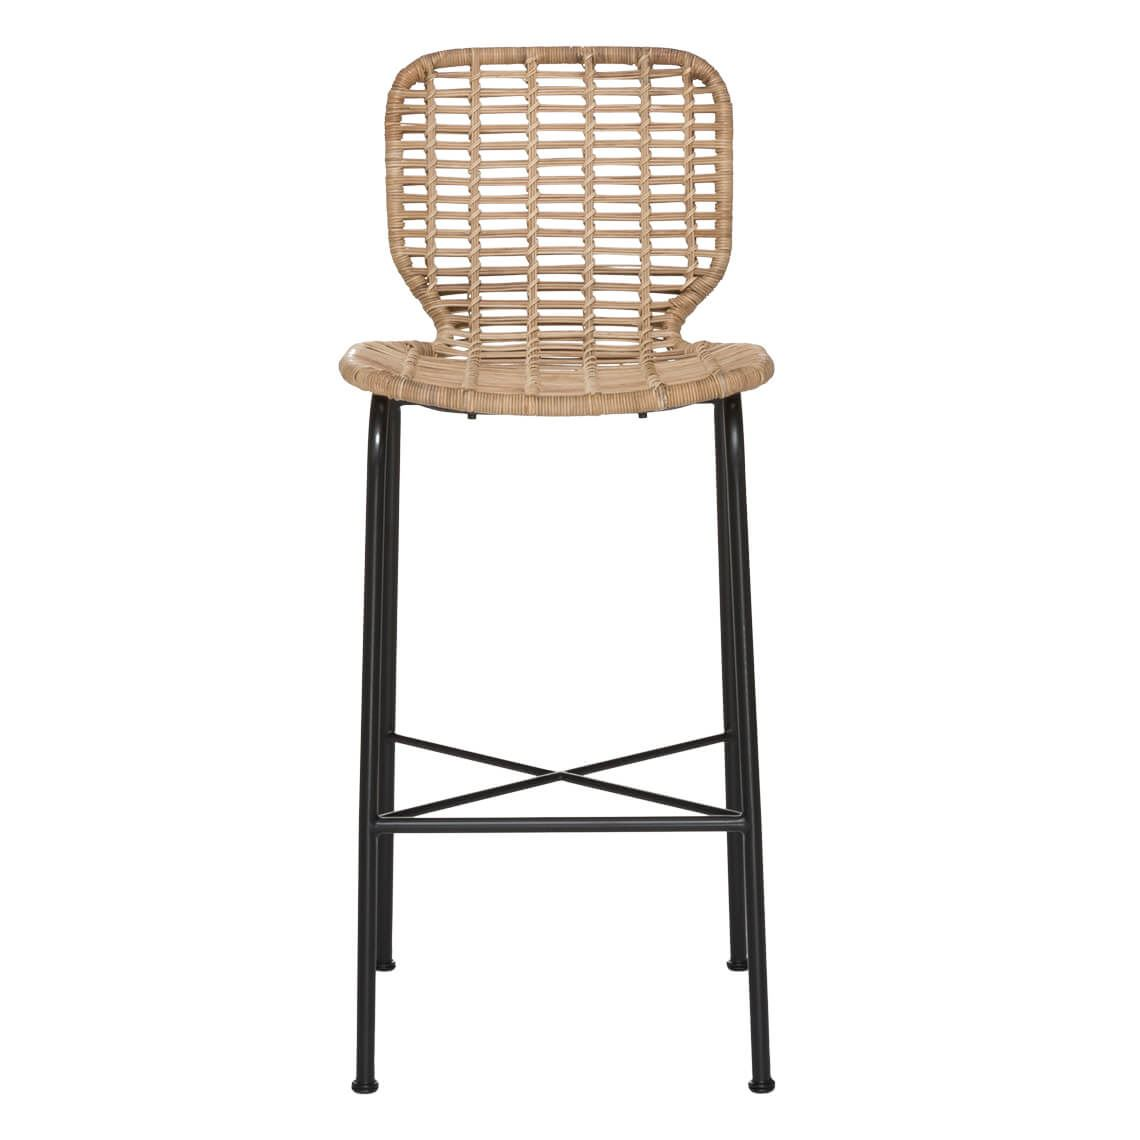 Daintree Bar Stool Size W 0cm x D 0cm x H 0cm in Natural Rattan/Steel Freedom by Freedom, a Dining Tables for sale on Style Sourcebook